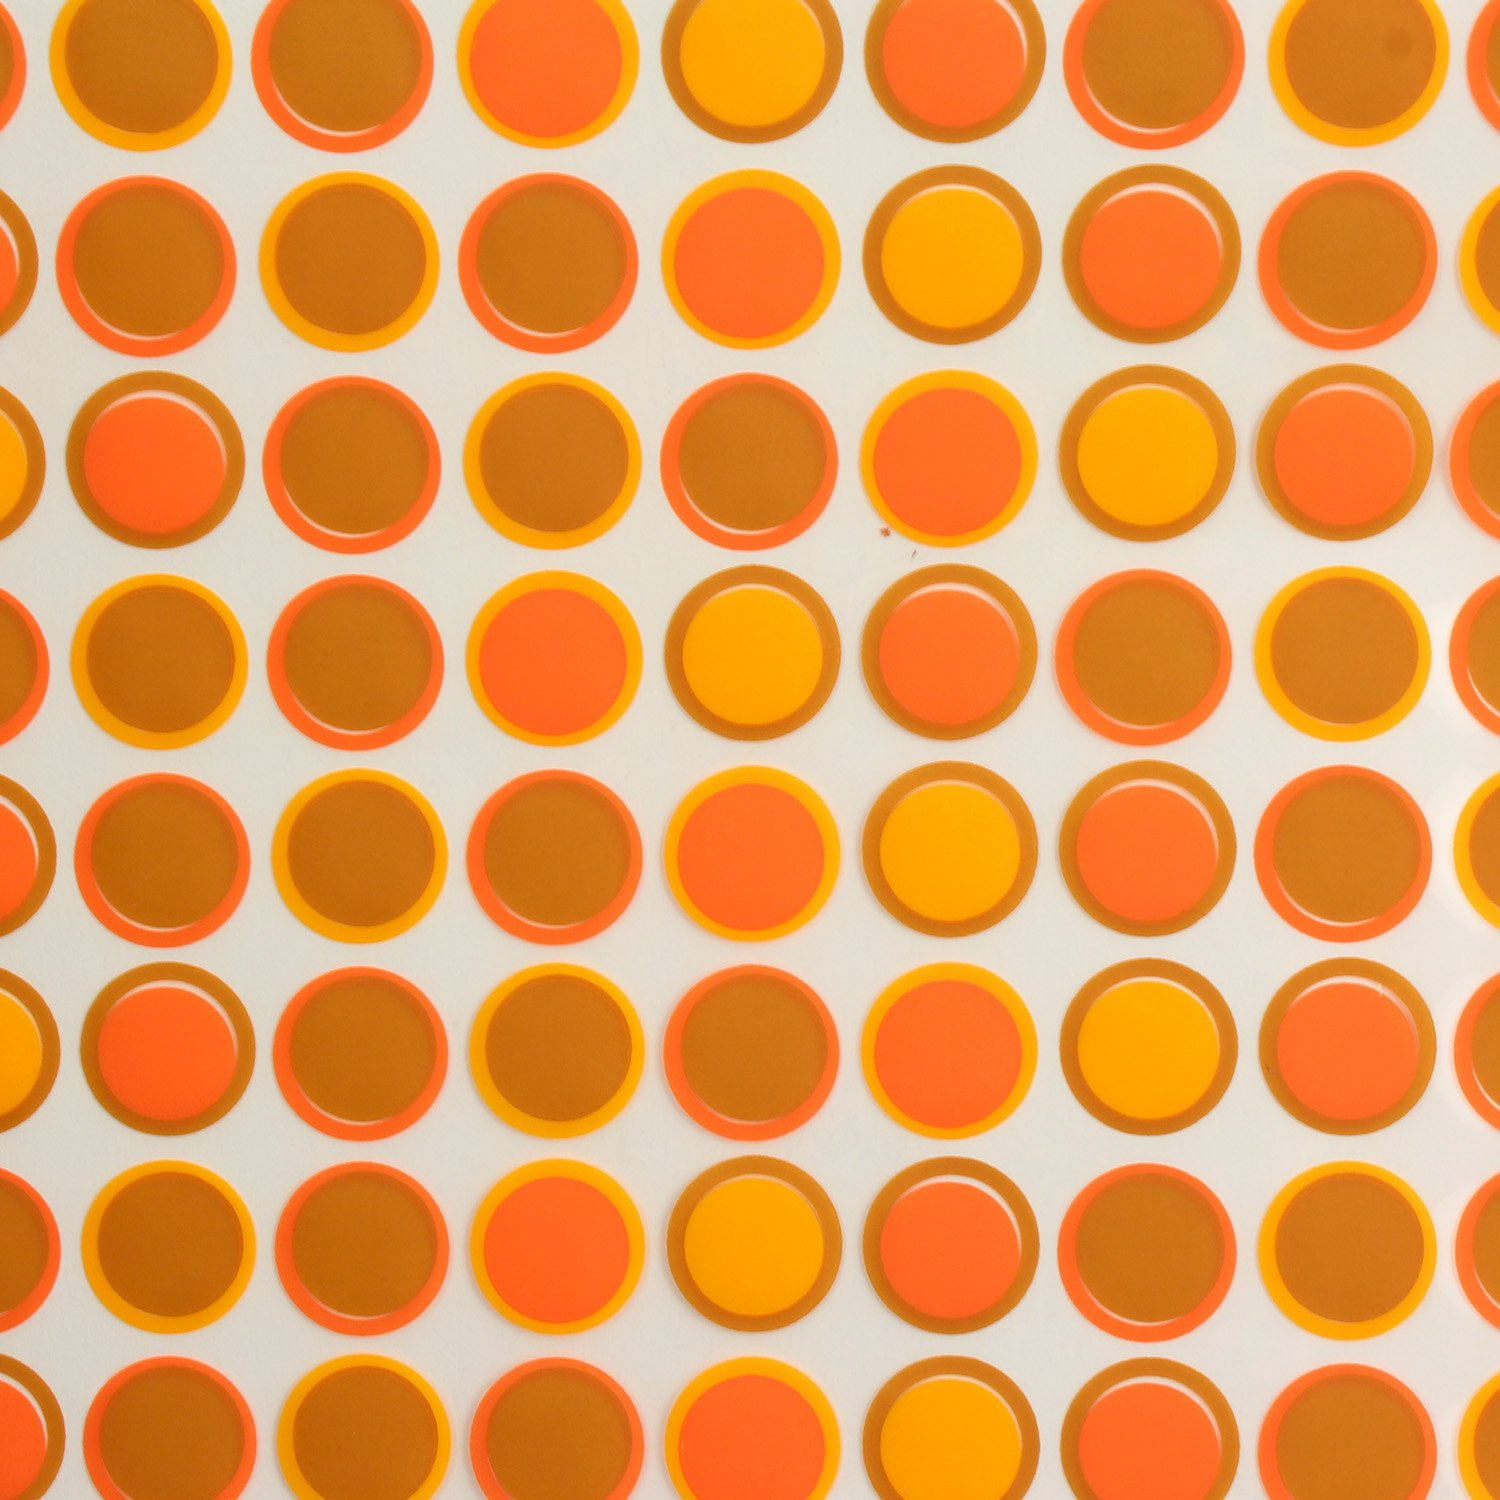 PCB Creation Chocolate Transfer Sheet, Orange and Brown Circles - Pack of 17